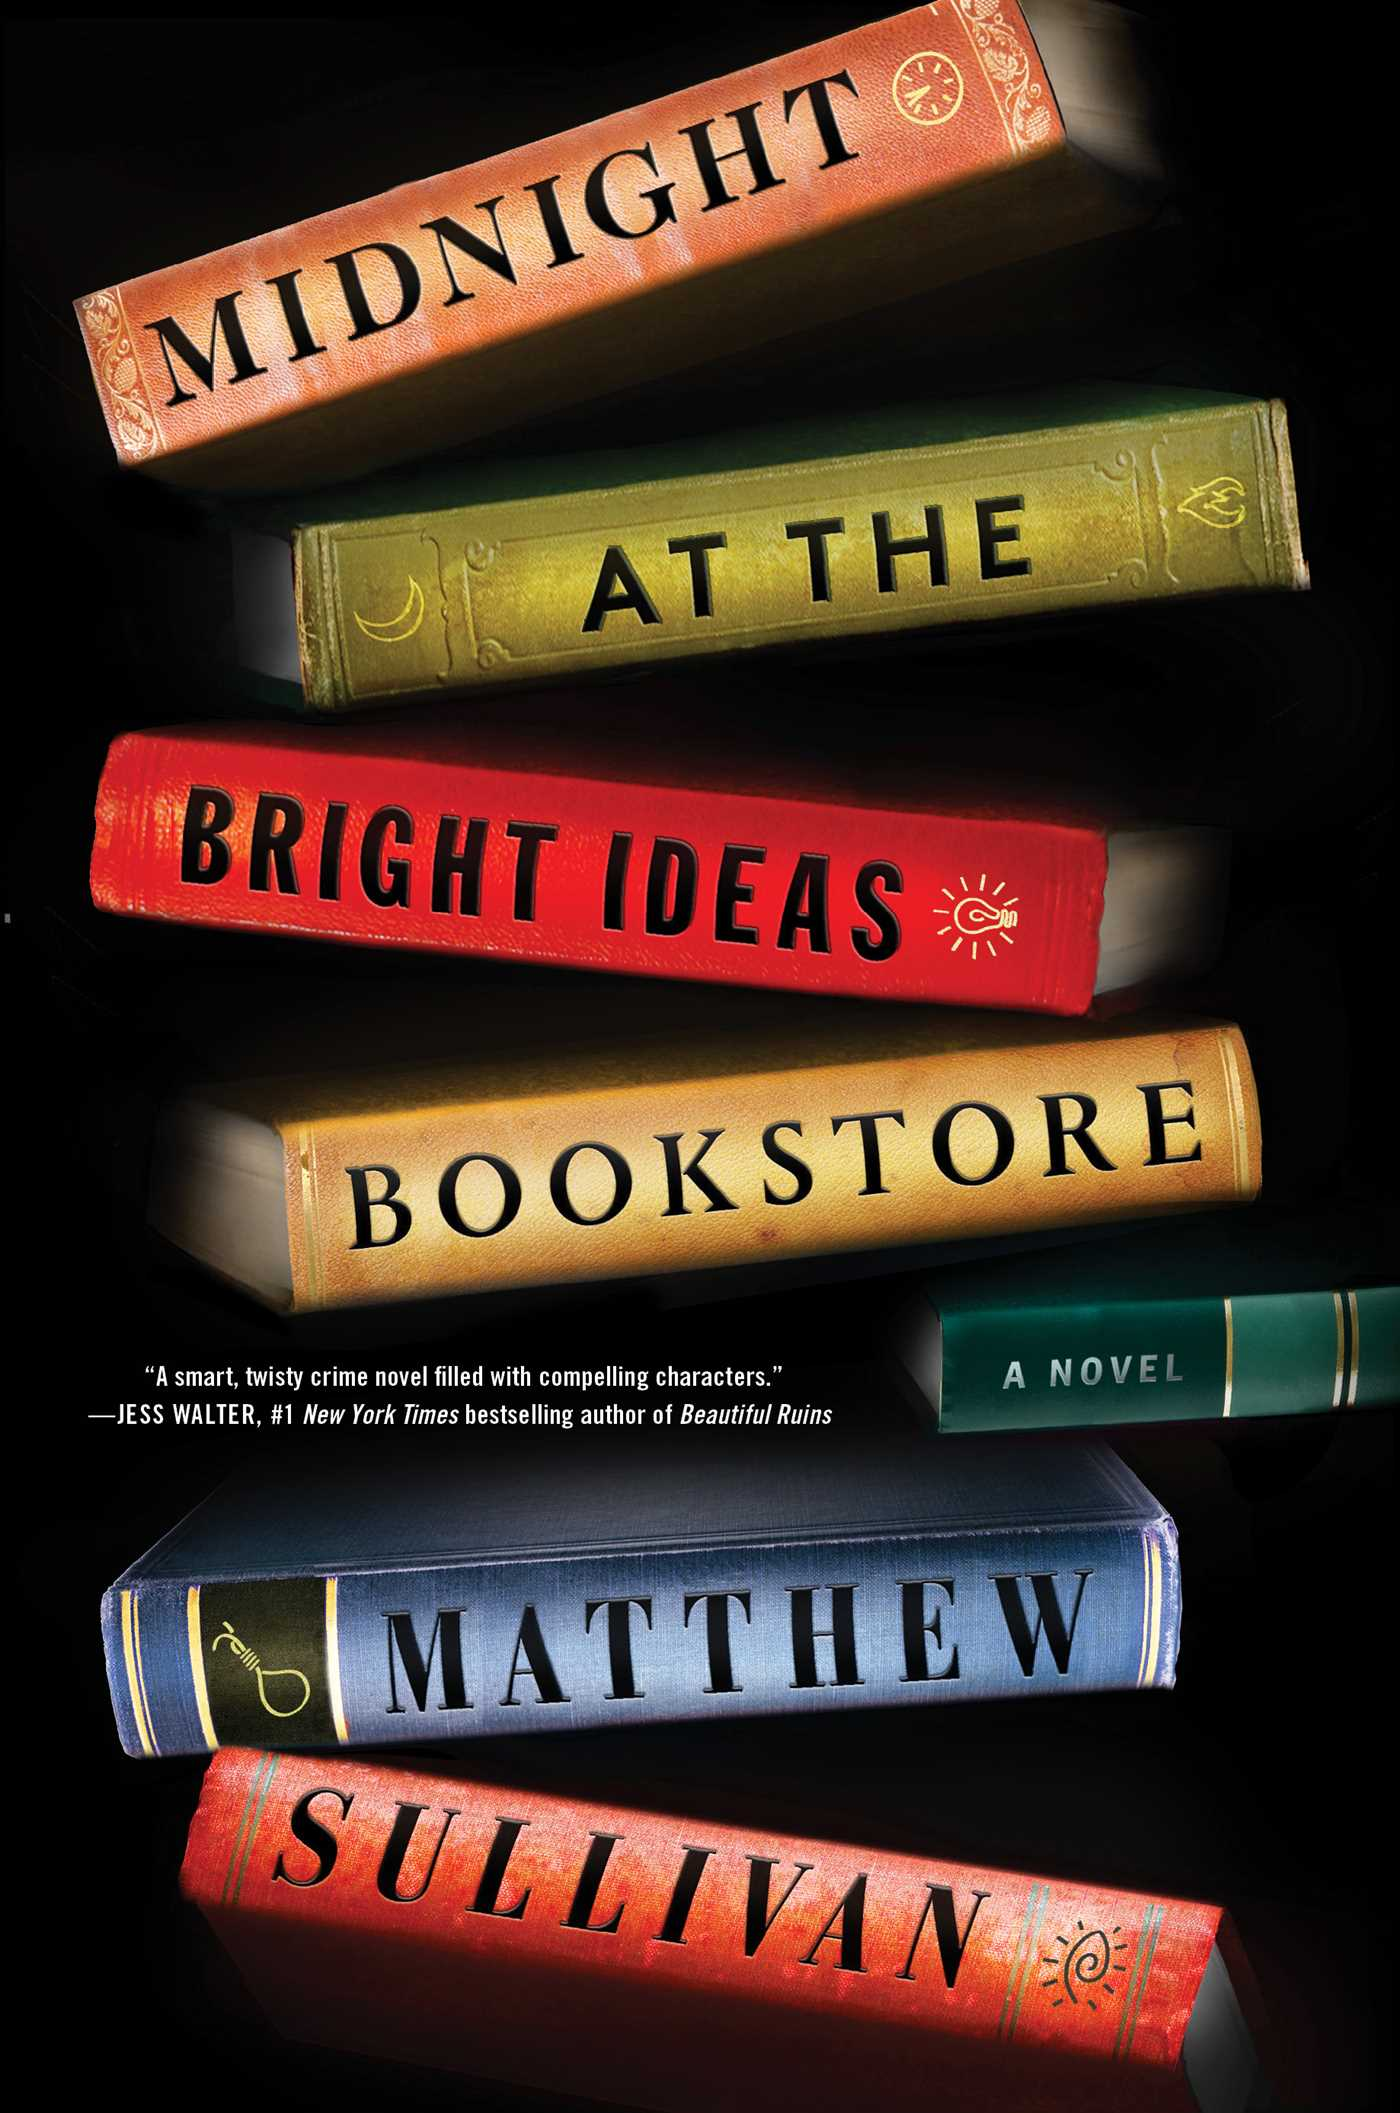 Midnight at the bright ideas bookstore 9781501116841 hr